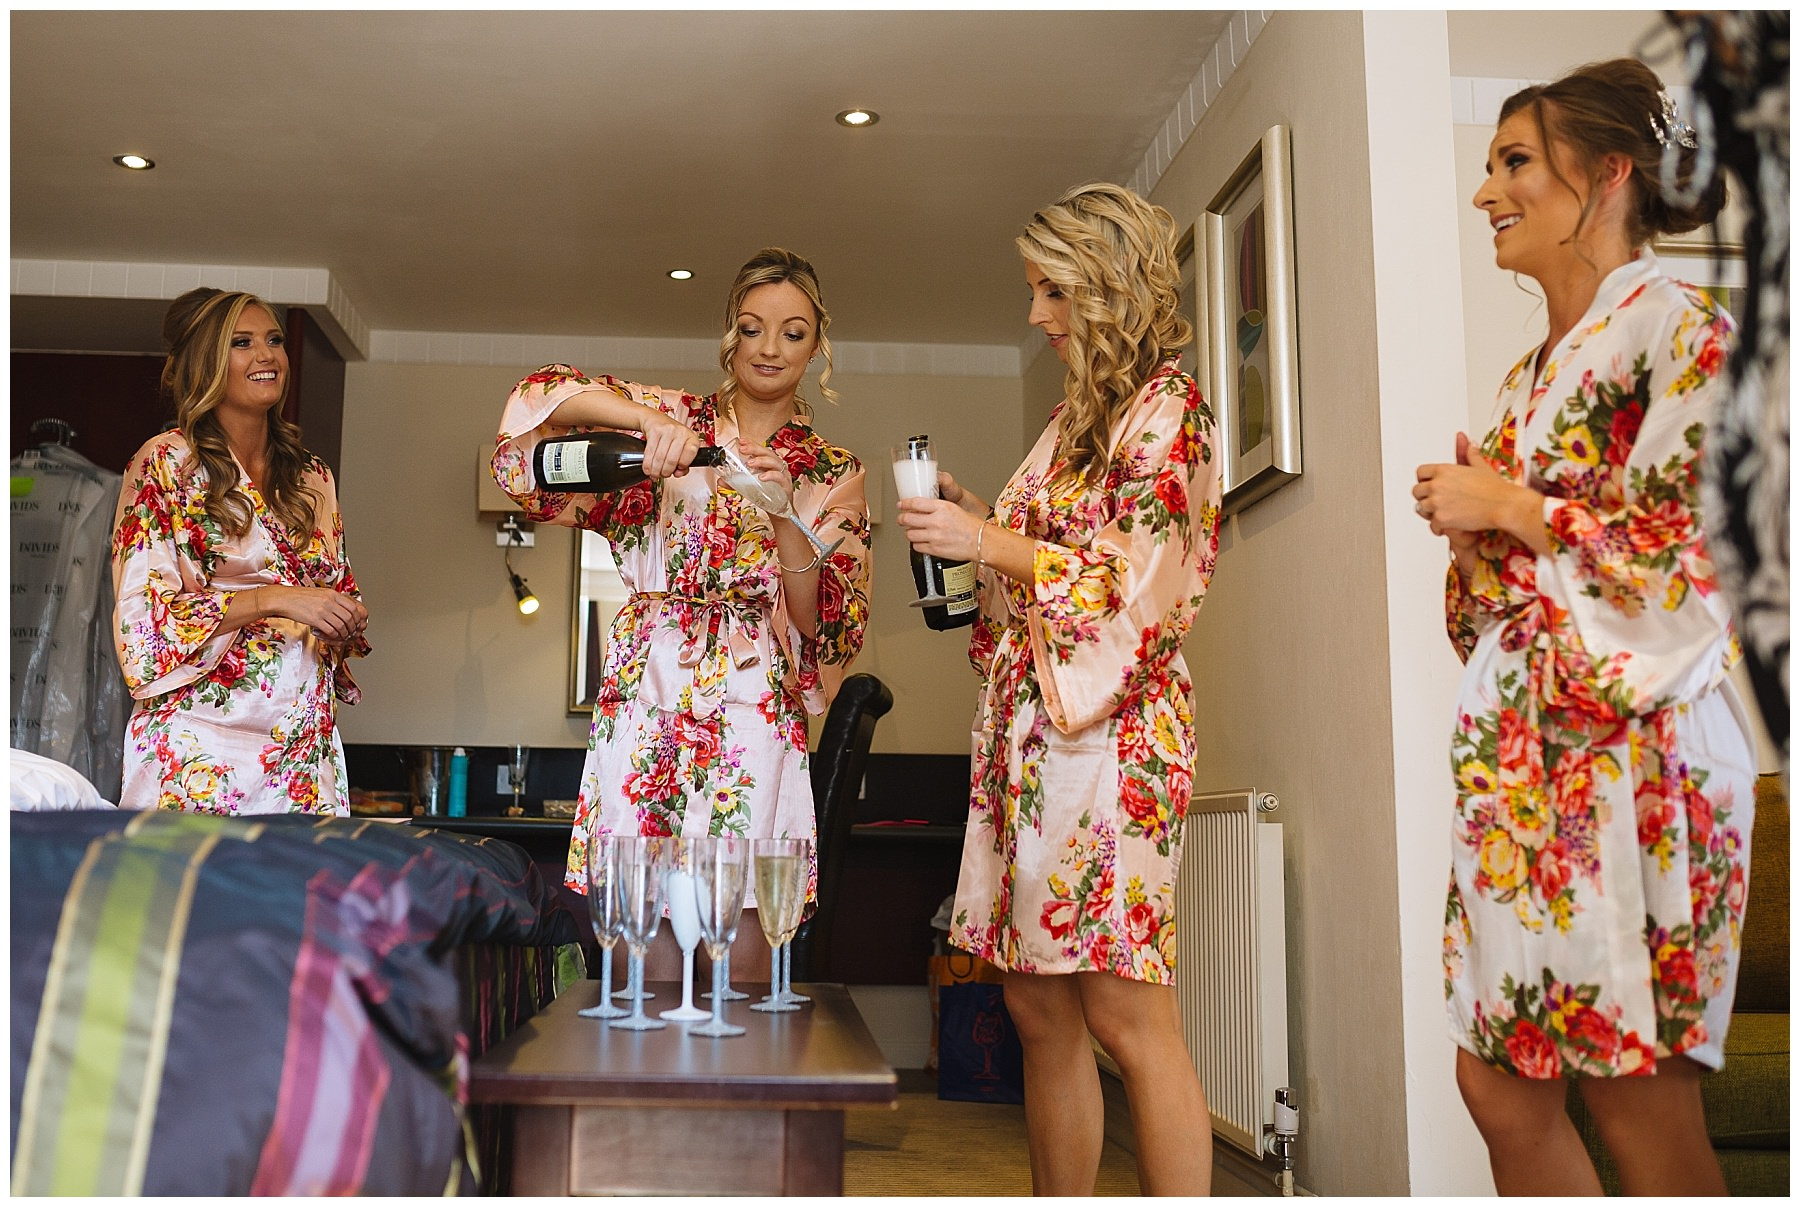 bridesmaids pour champagne during bridal prep